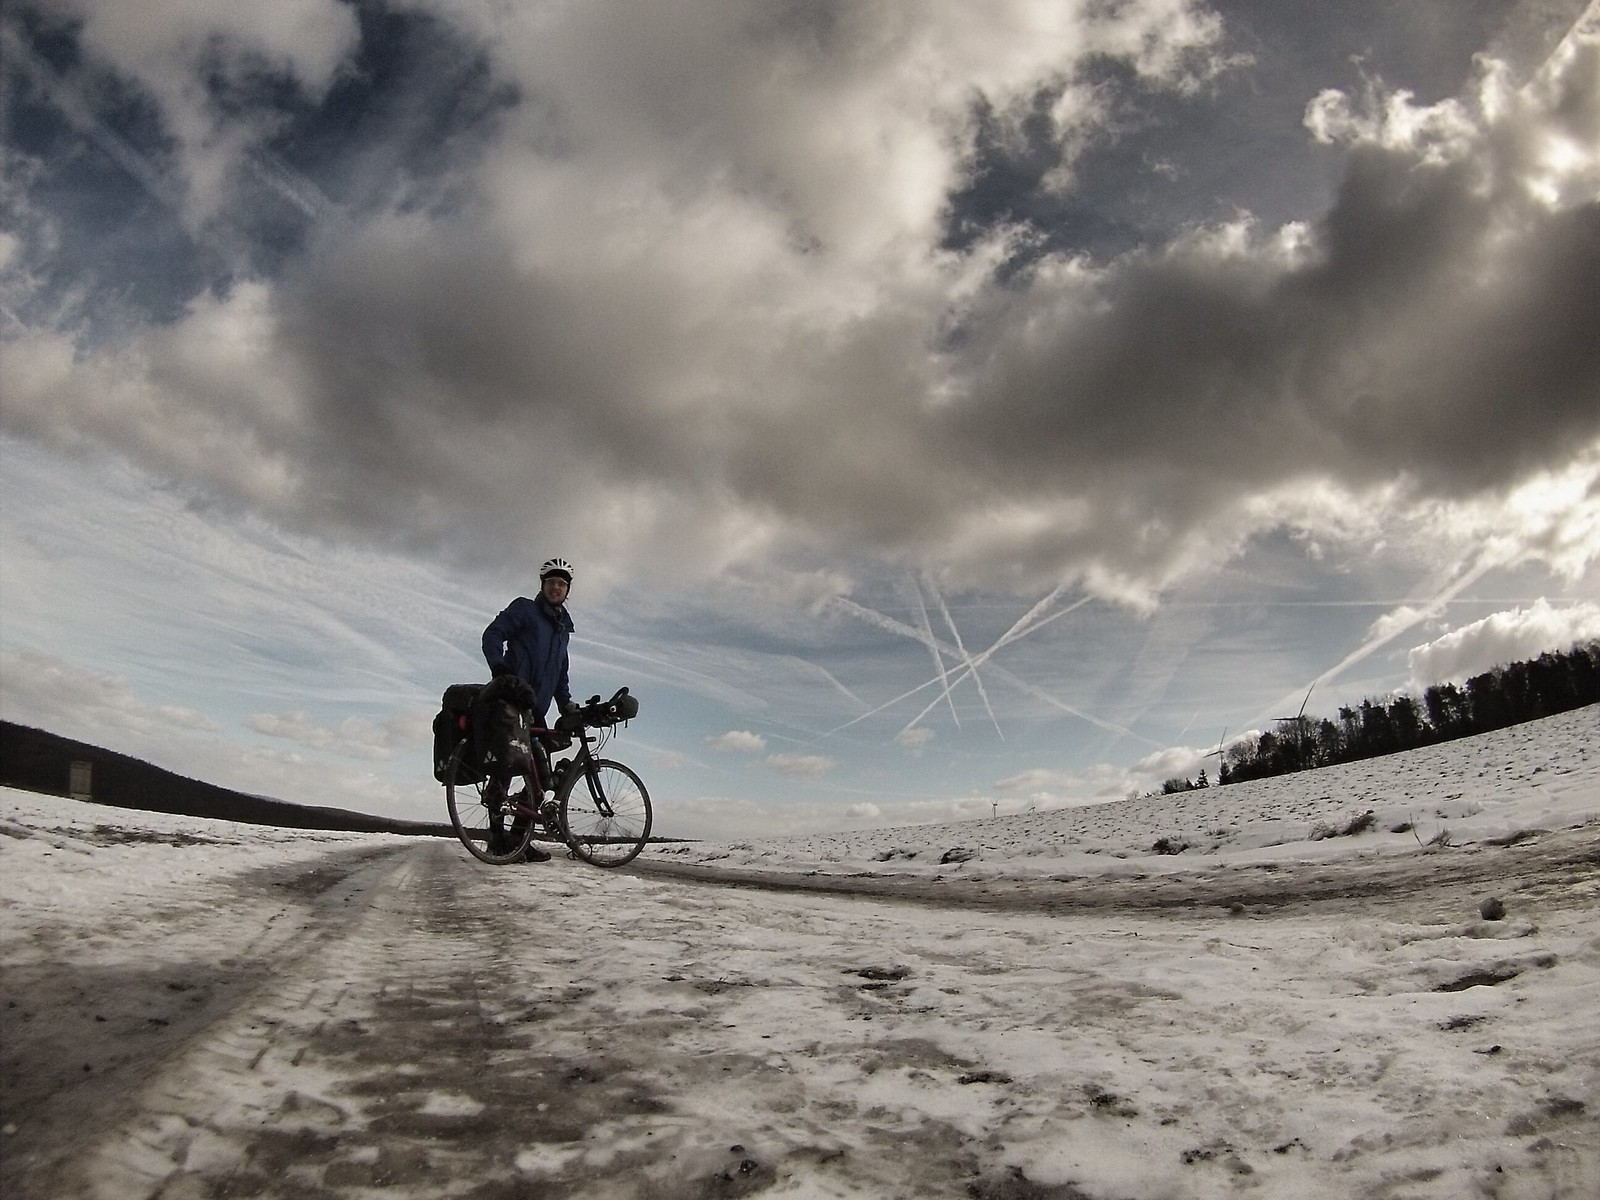 Mountains and snow in Germany #r2s #cycling #adventure #germany